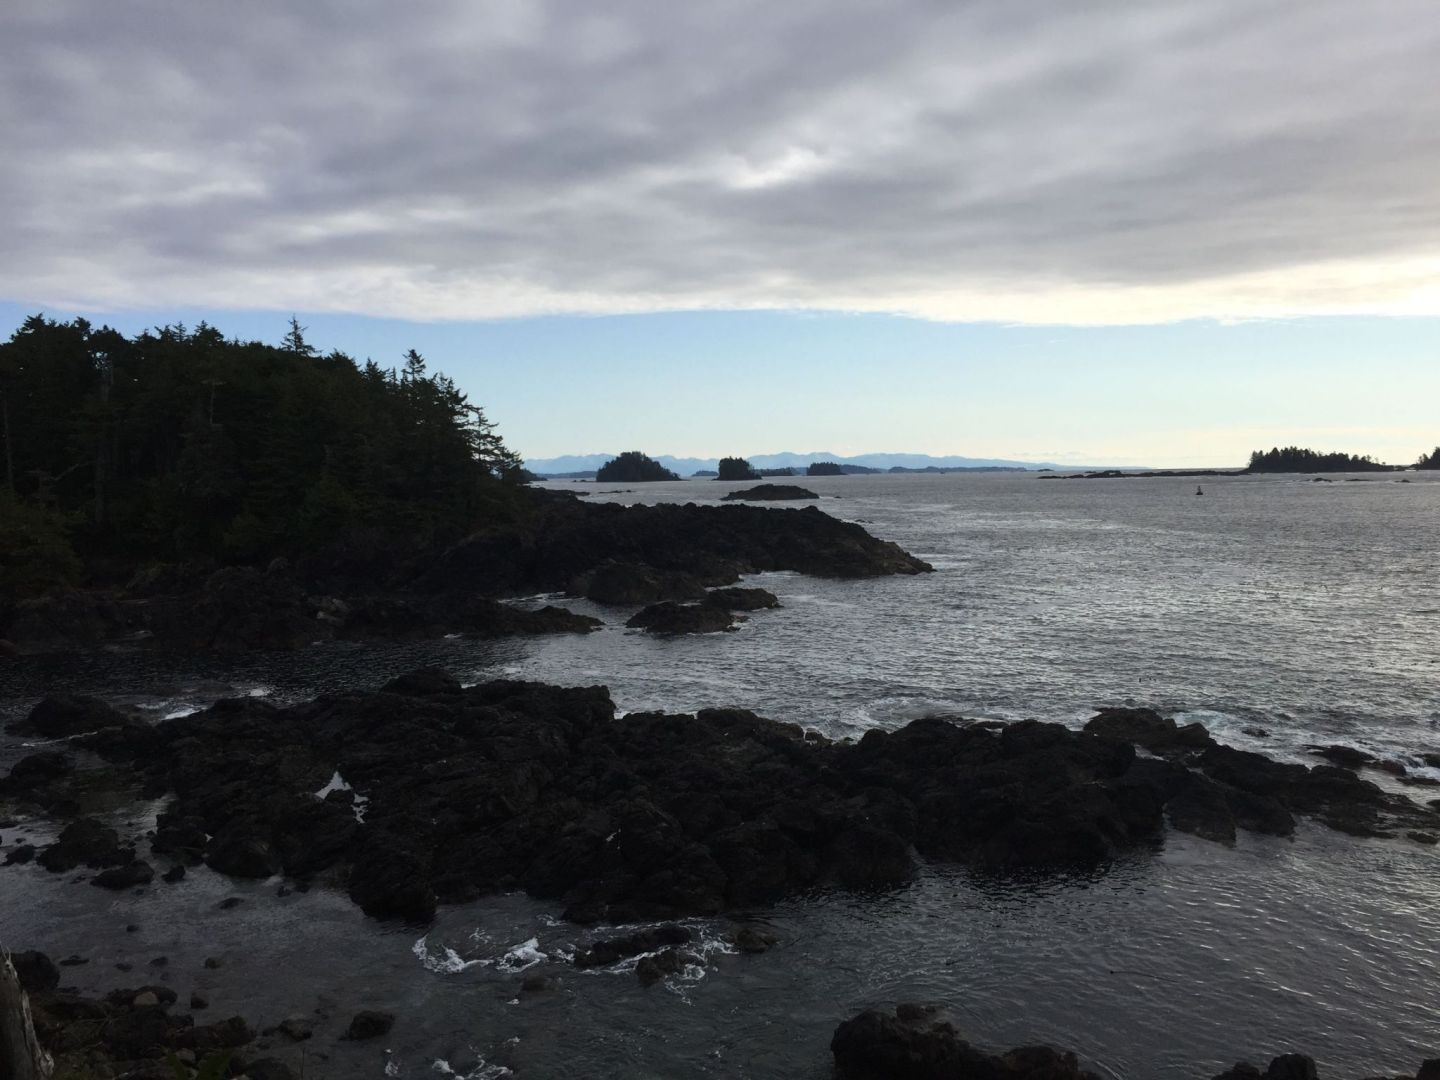 Storm watching in Ucluelet